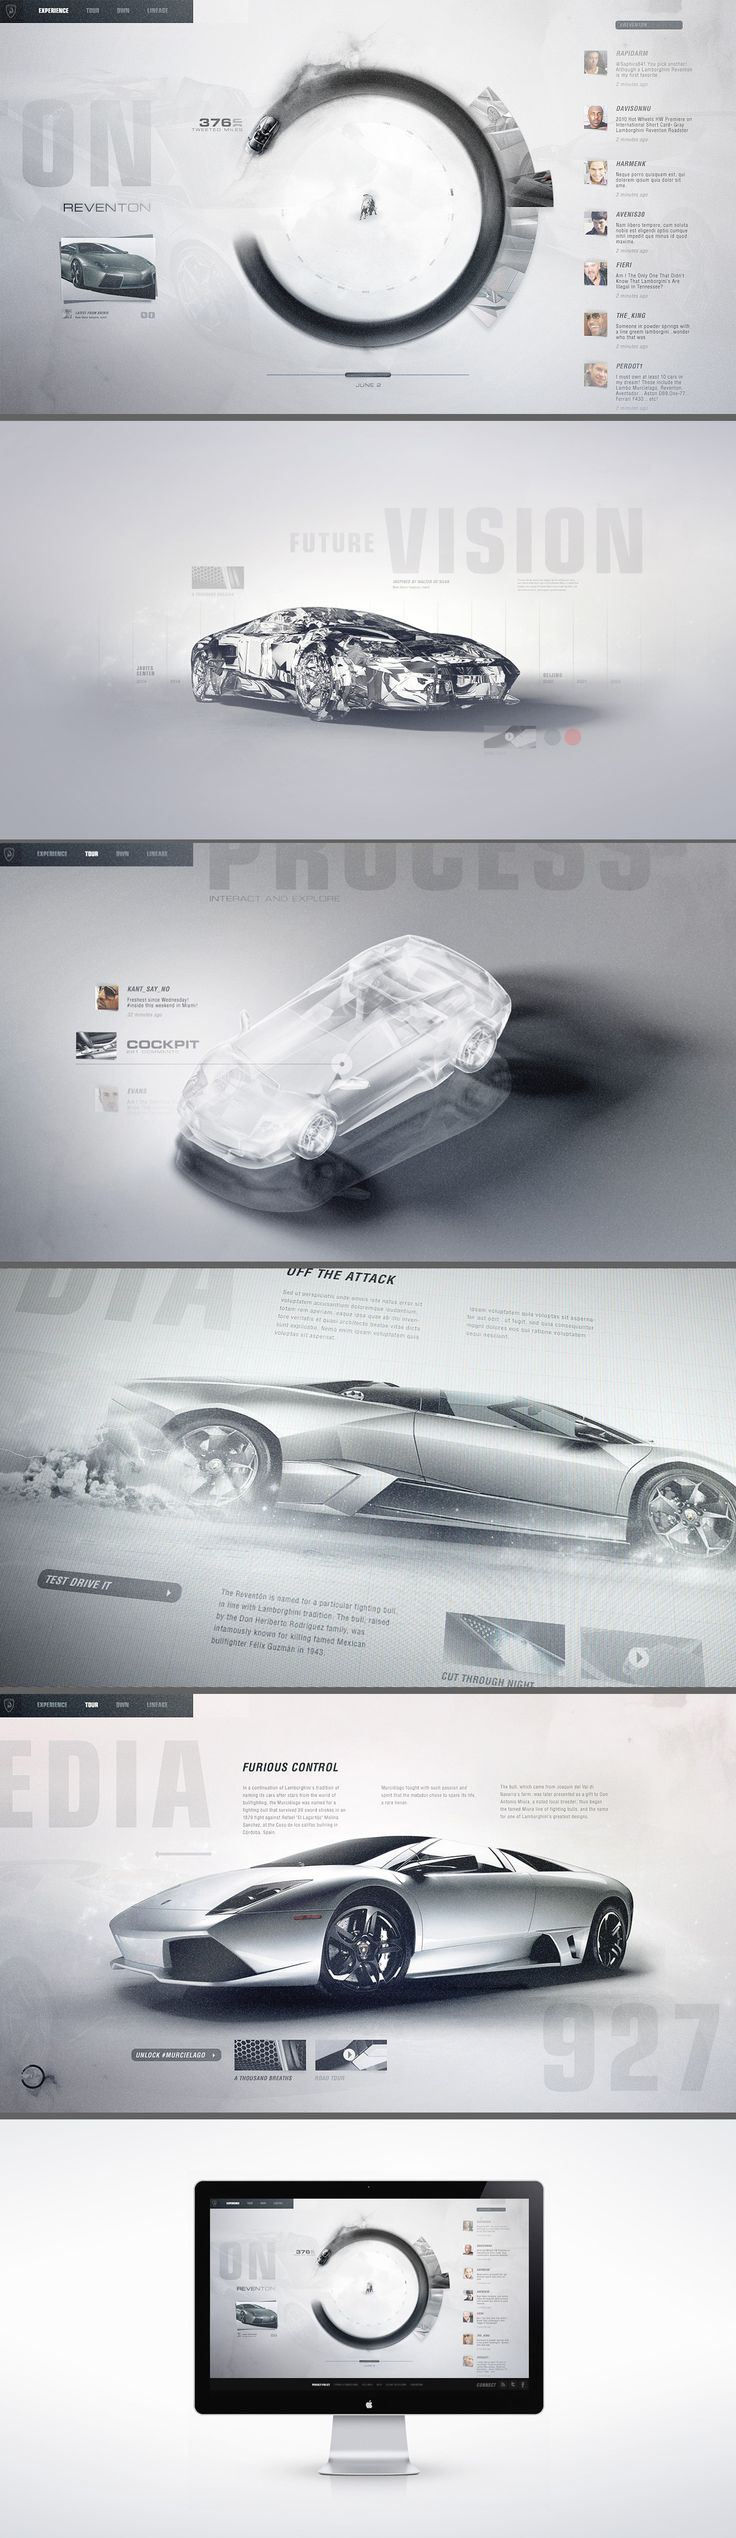 Lamborghini Lineage / Interactive concept design for Automobili Lamborghini. A gestural touch-screen interface invites enthusiasts to explore the lineage of the acclaimed automaker through a timeline emphasizing creative history, technology, and process. A lightweight social layer permeates the editorial layouts in real-time piped directly from tastemakers and brand evangelists.   http://kulthouse.com/work.php?project=lamb